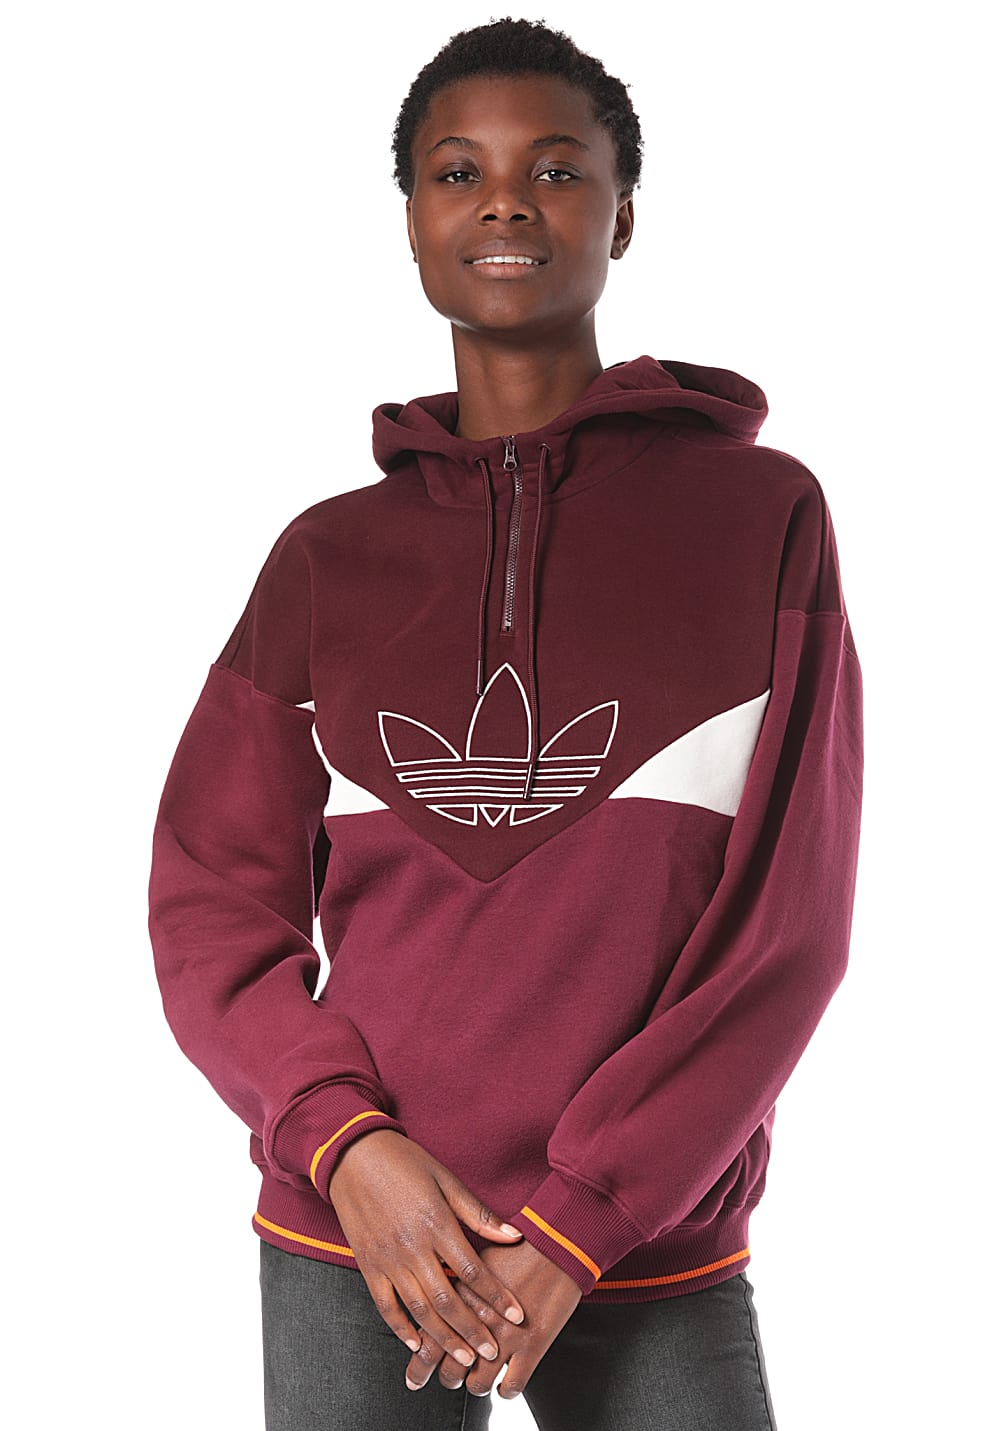 ADIDAS ORIGINALS Colorado OG - Sweat à capuche pour Femme - Rouge